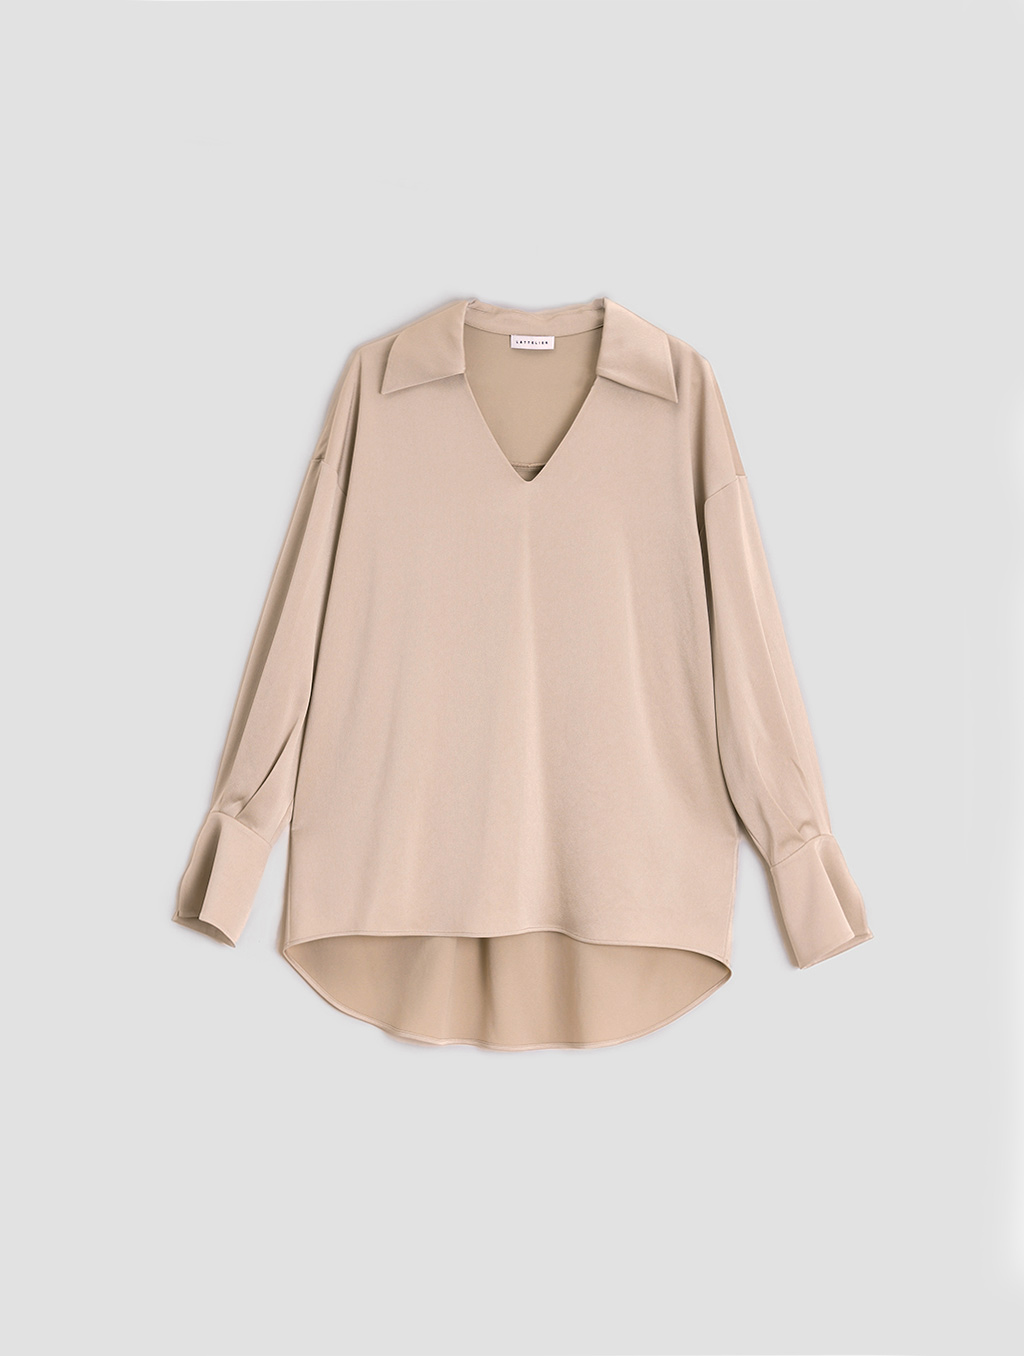 buttoned cuff blouse- Tiled-light camel